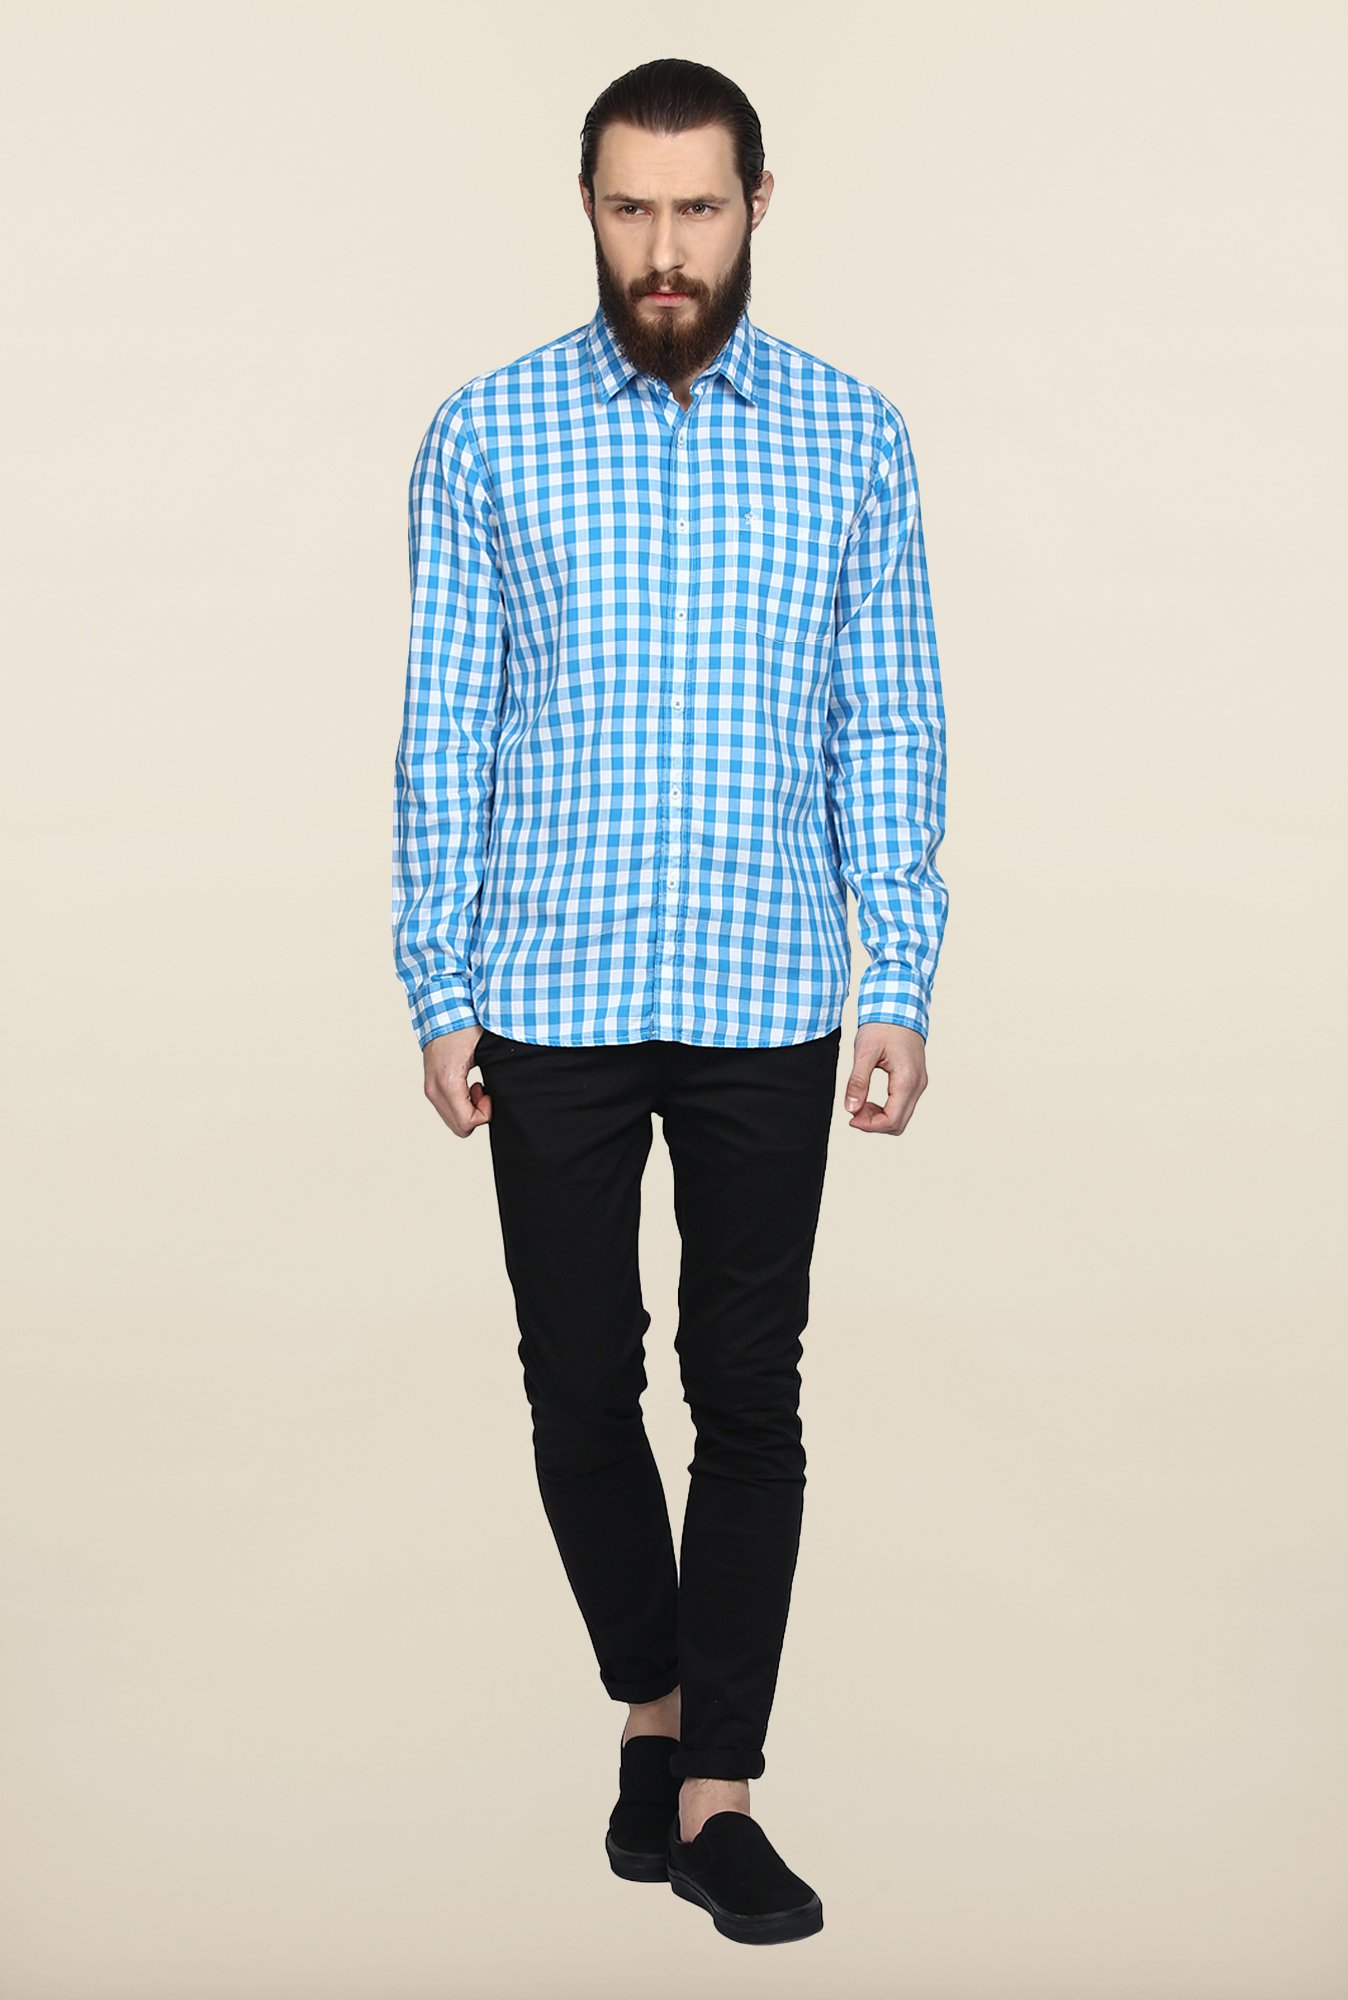 Turtle White And Blue Checks Casual Shirt